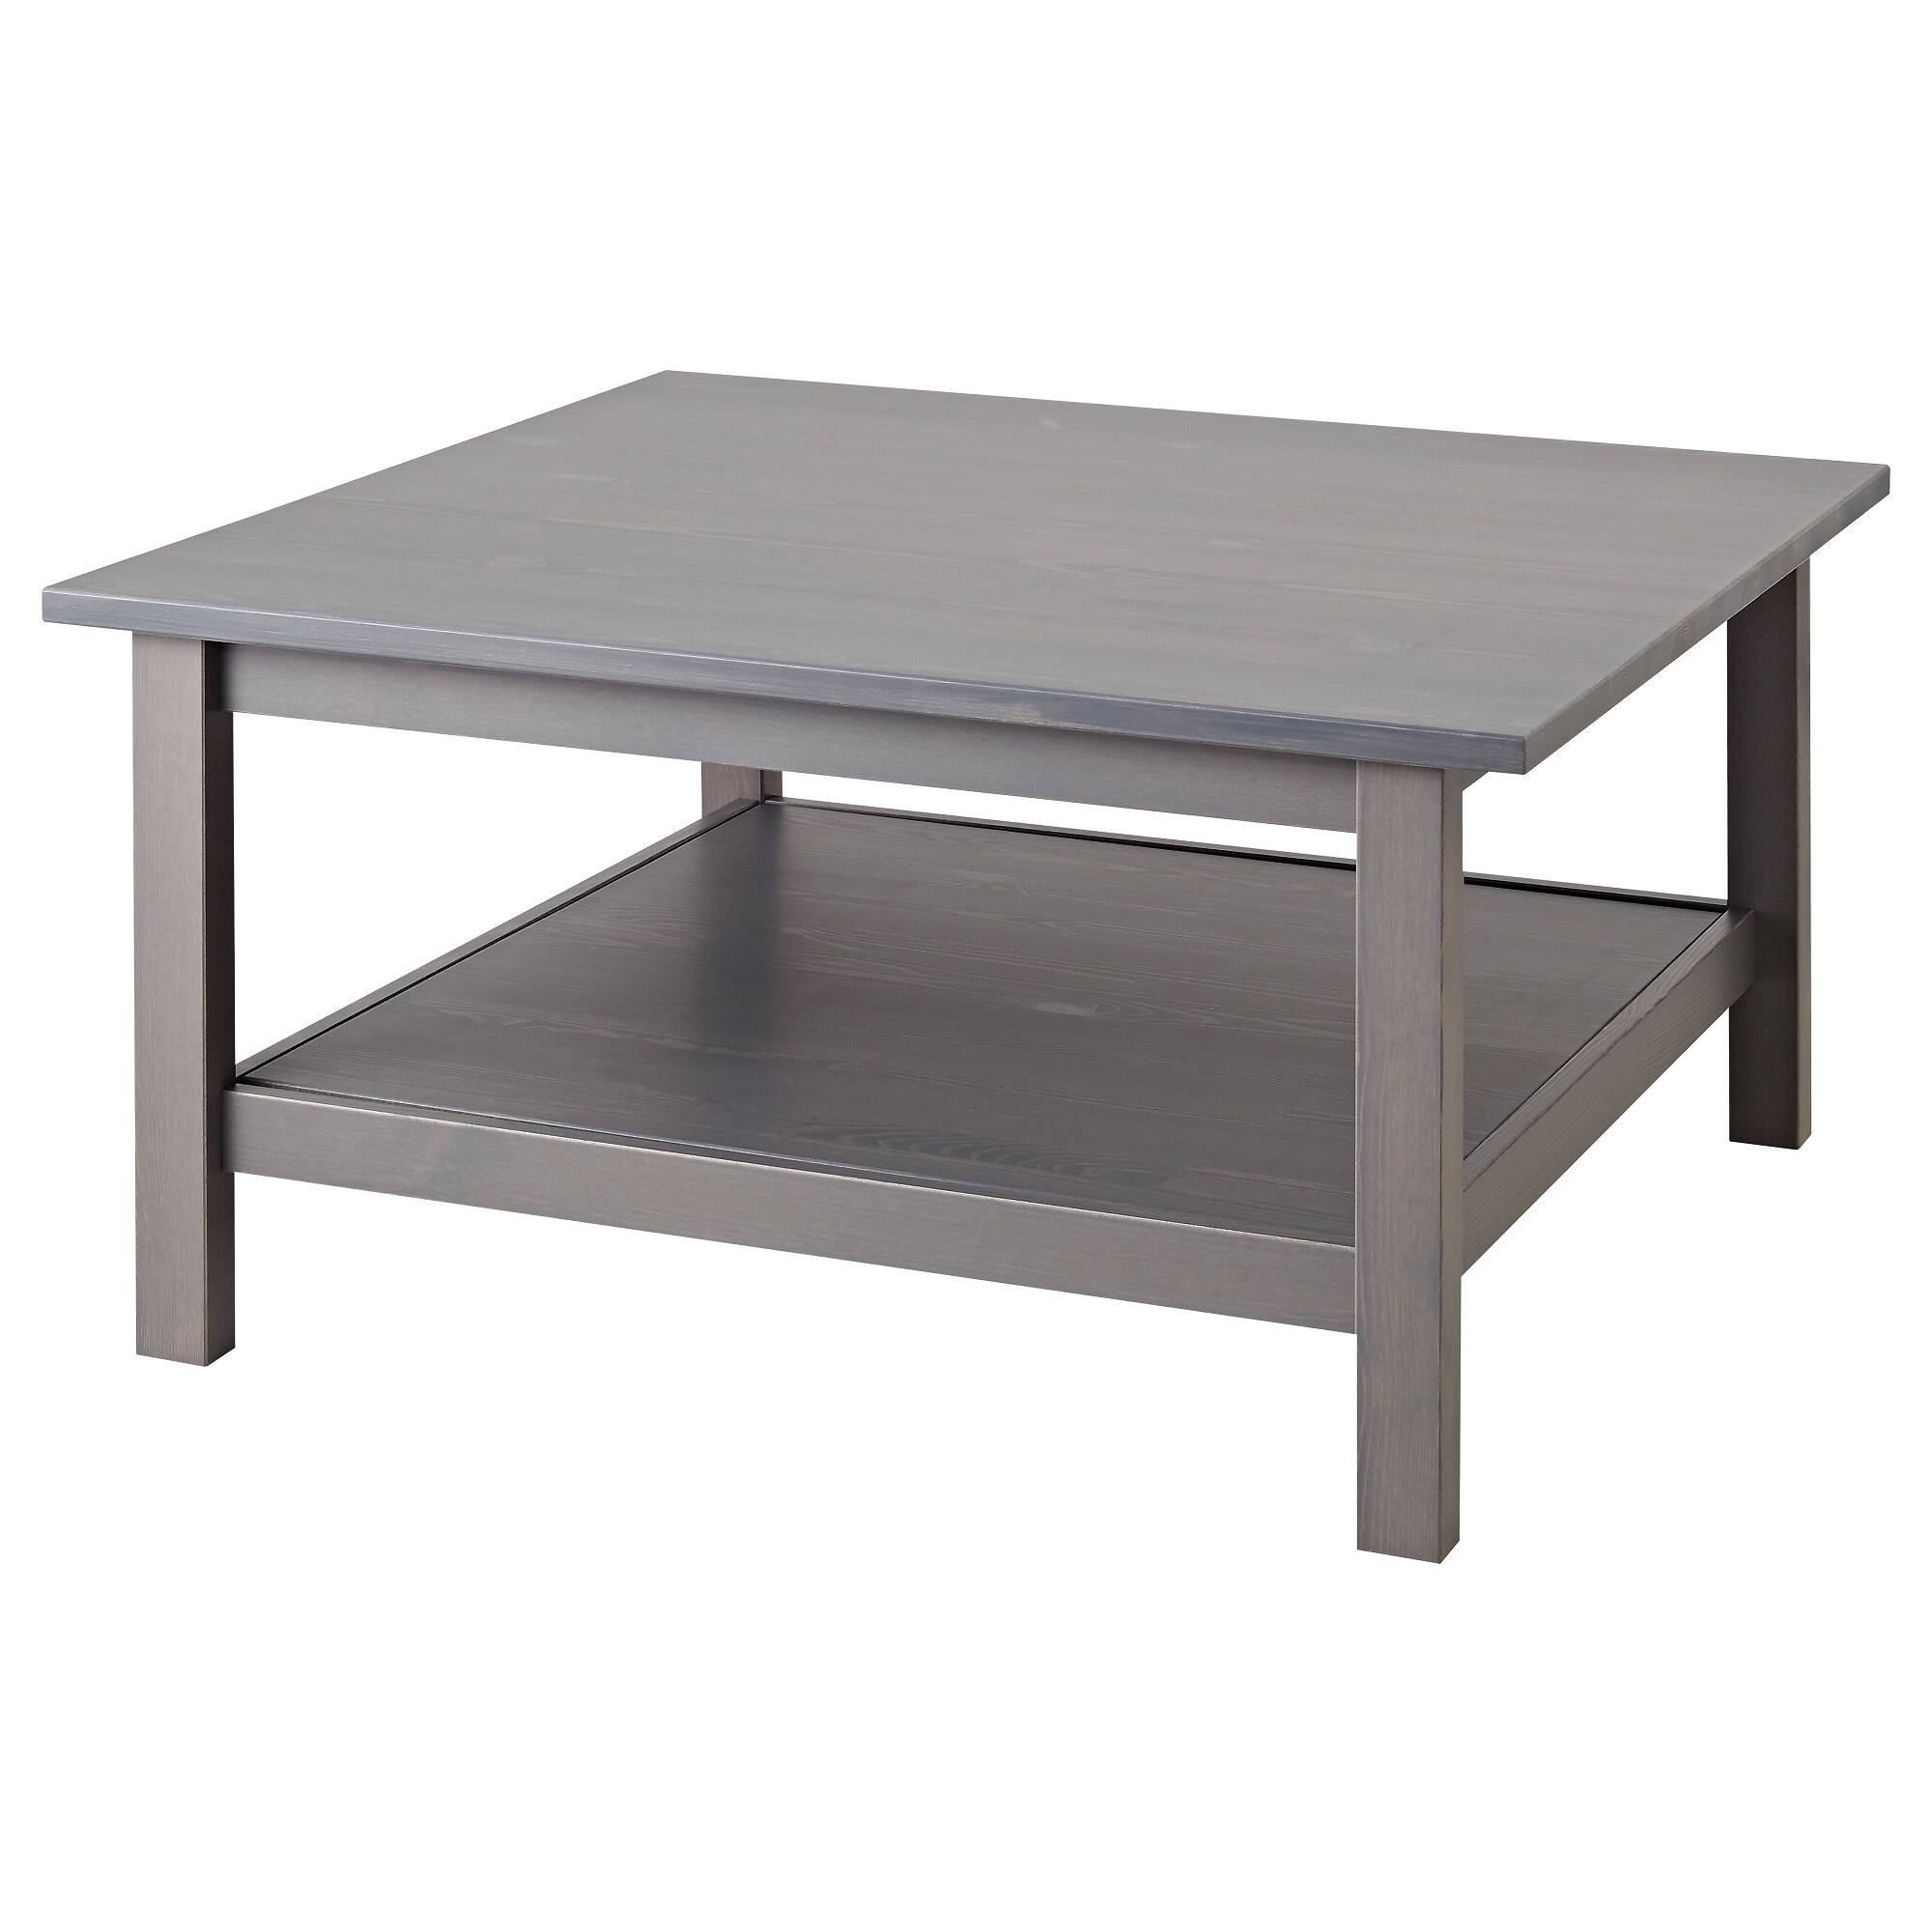 IKEA Brusali High Cabinet $79, Hemnes Coffee Table $79 & More w/ Free Store Pickup (Selected Stores)